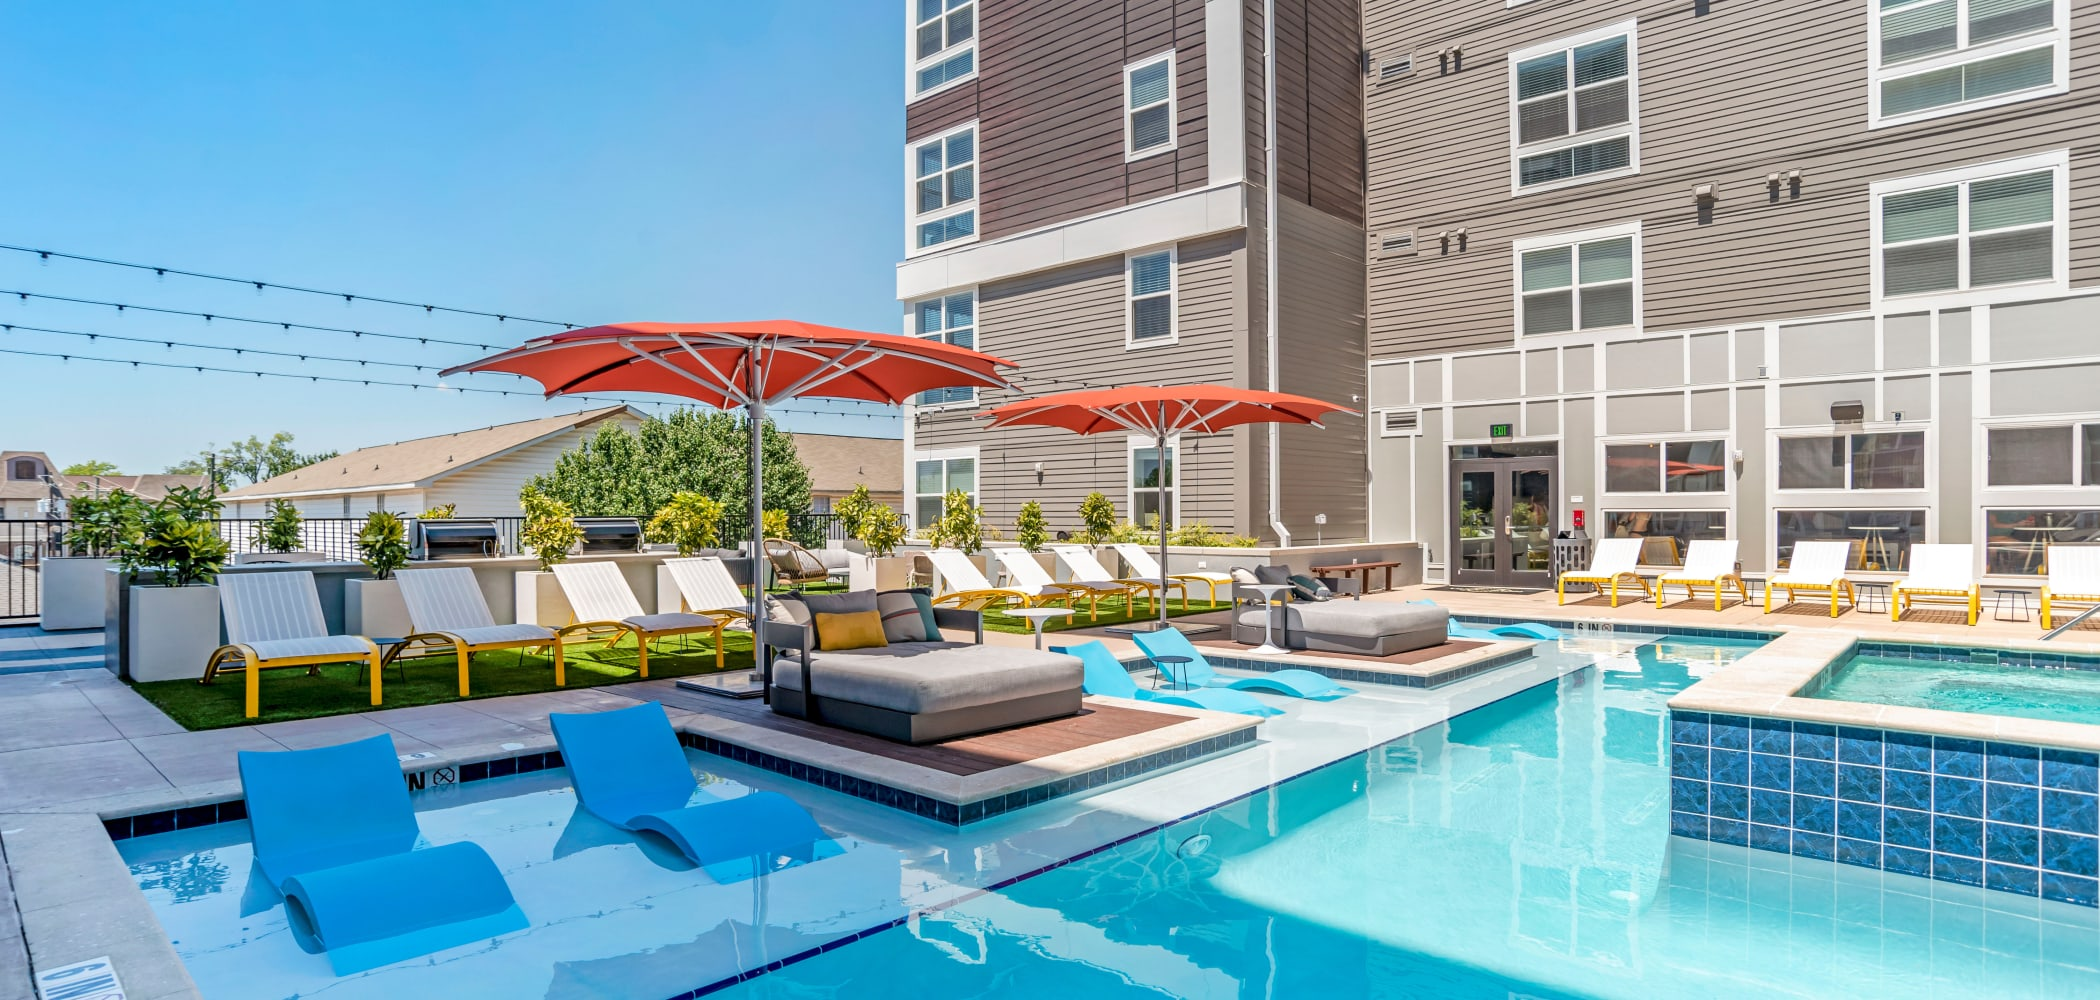 Rooftop Sun Deck with Day Beds & Lounge ChairsUNCOMMON Tuscaloosa in Tuscaloosa, Alabama